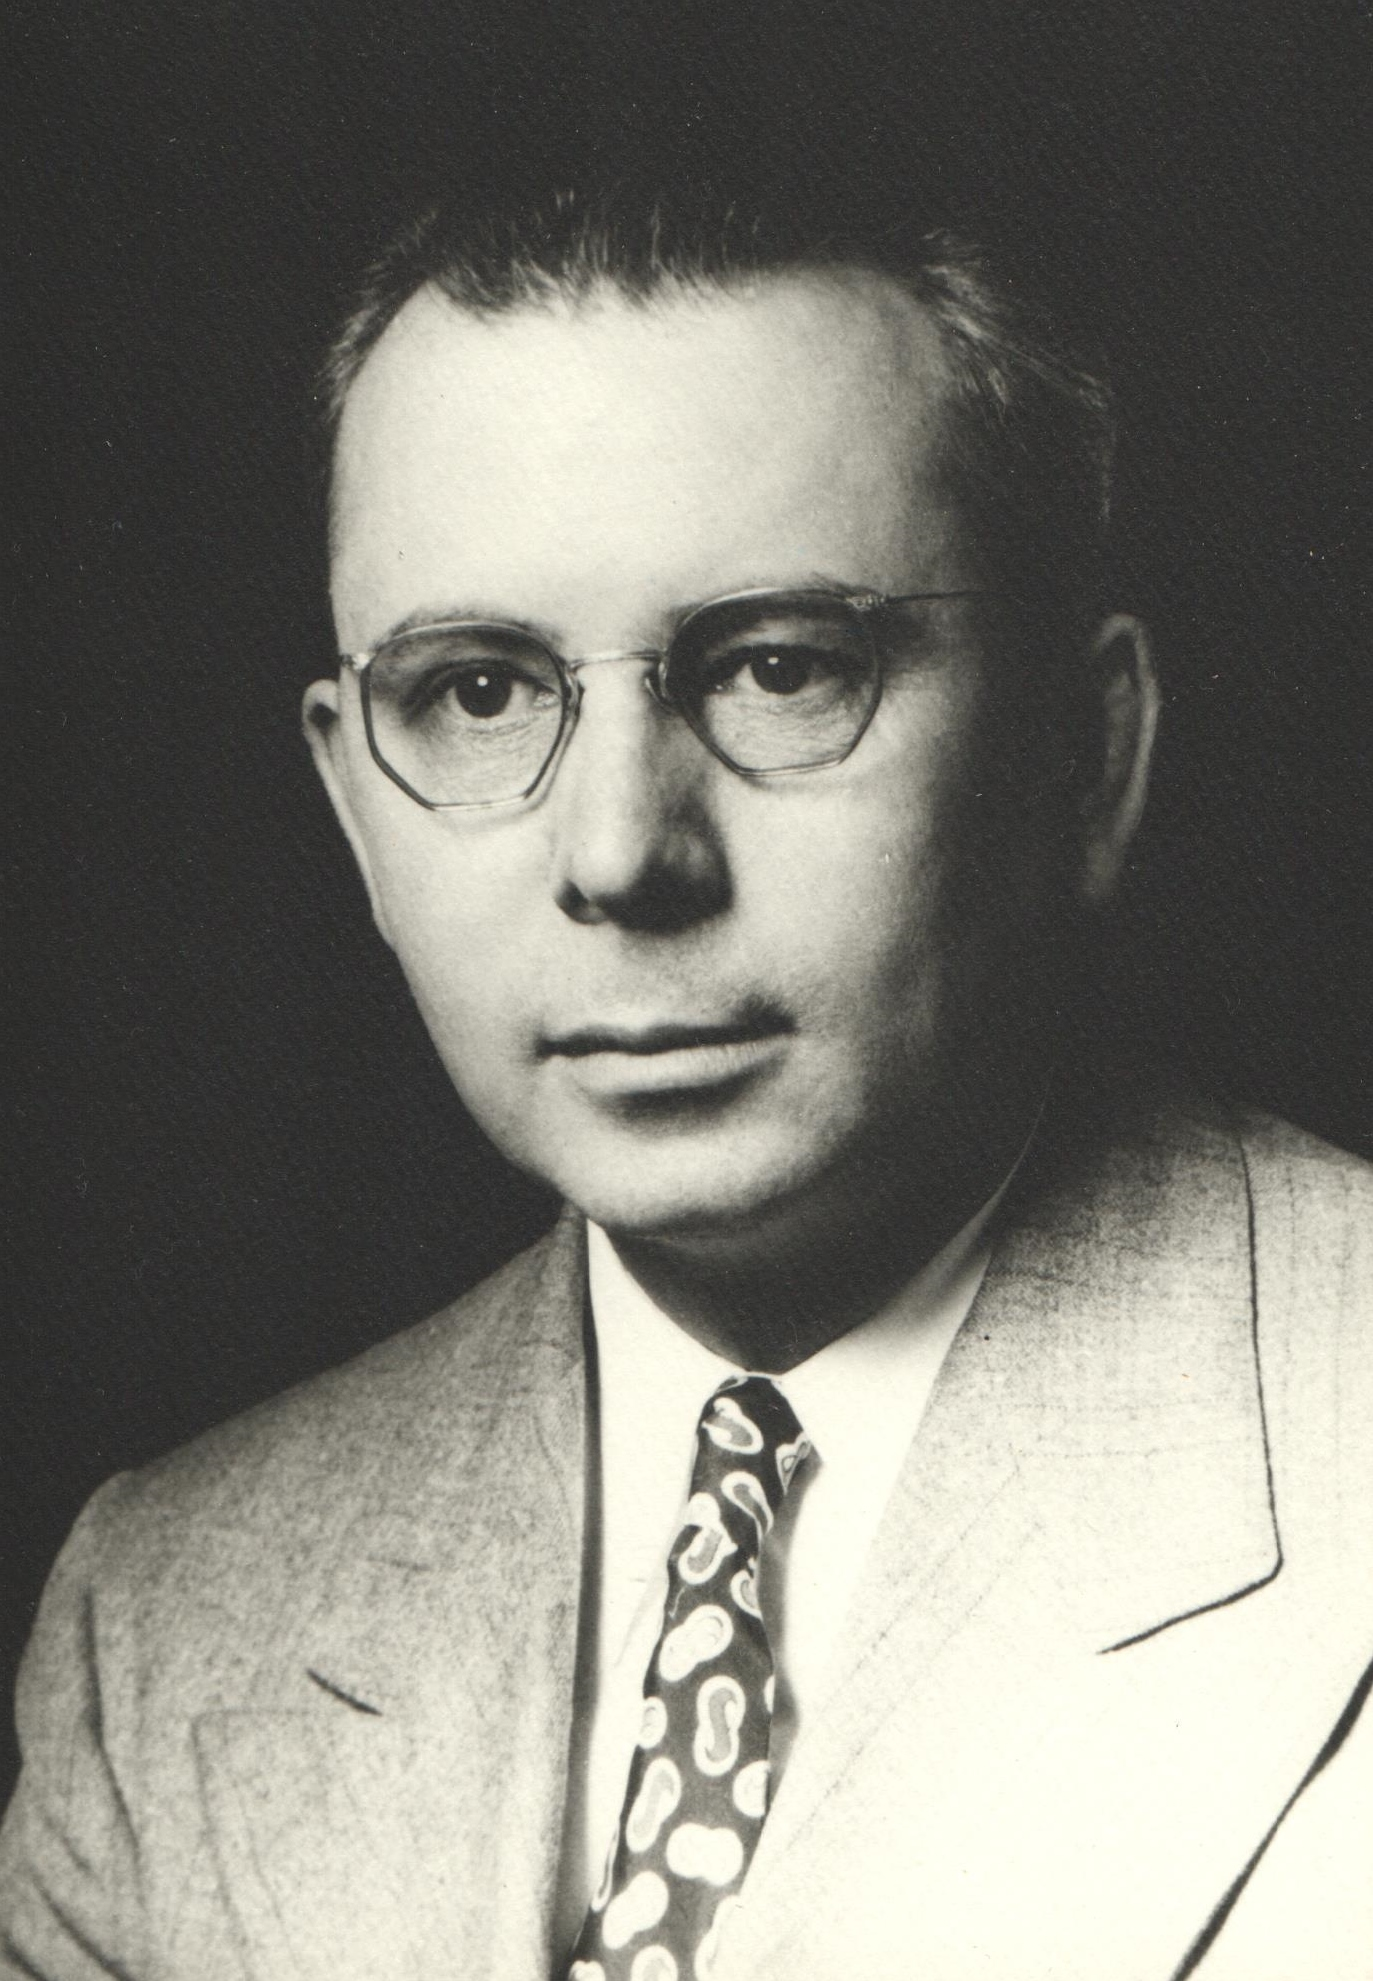 1946 William J. Luke